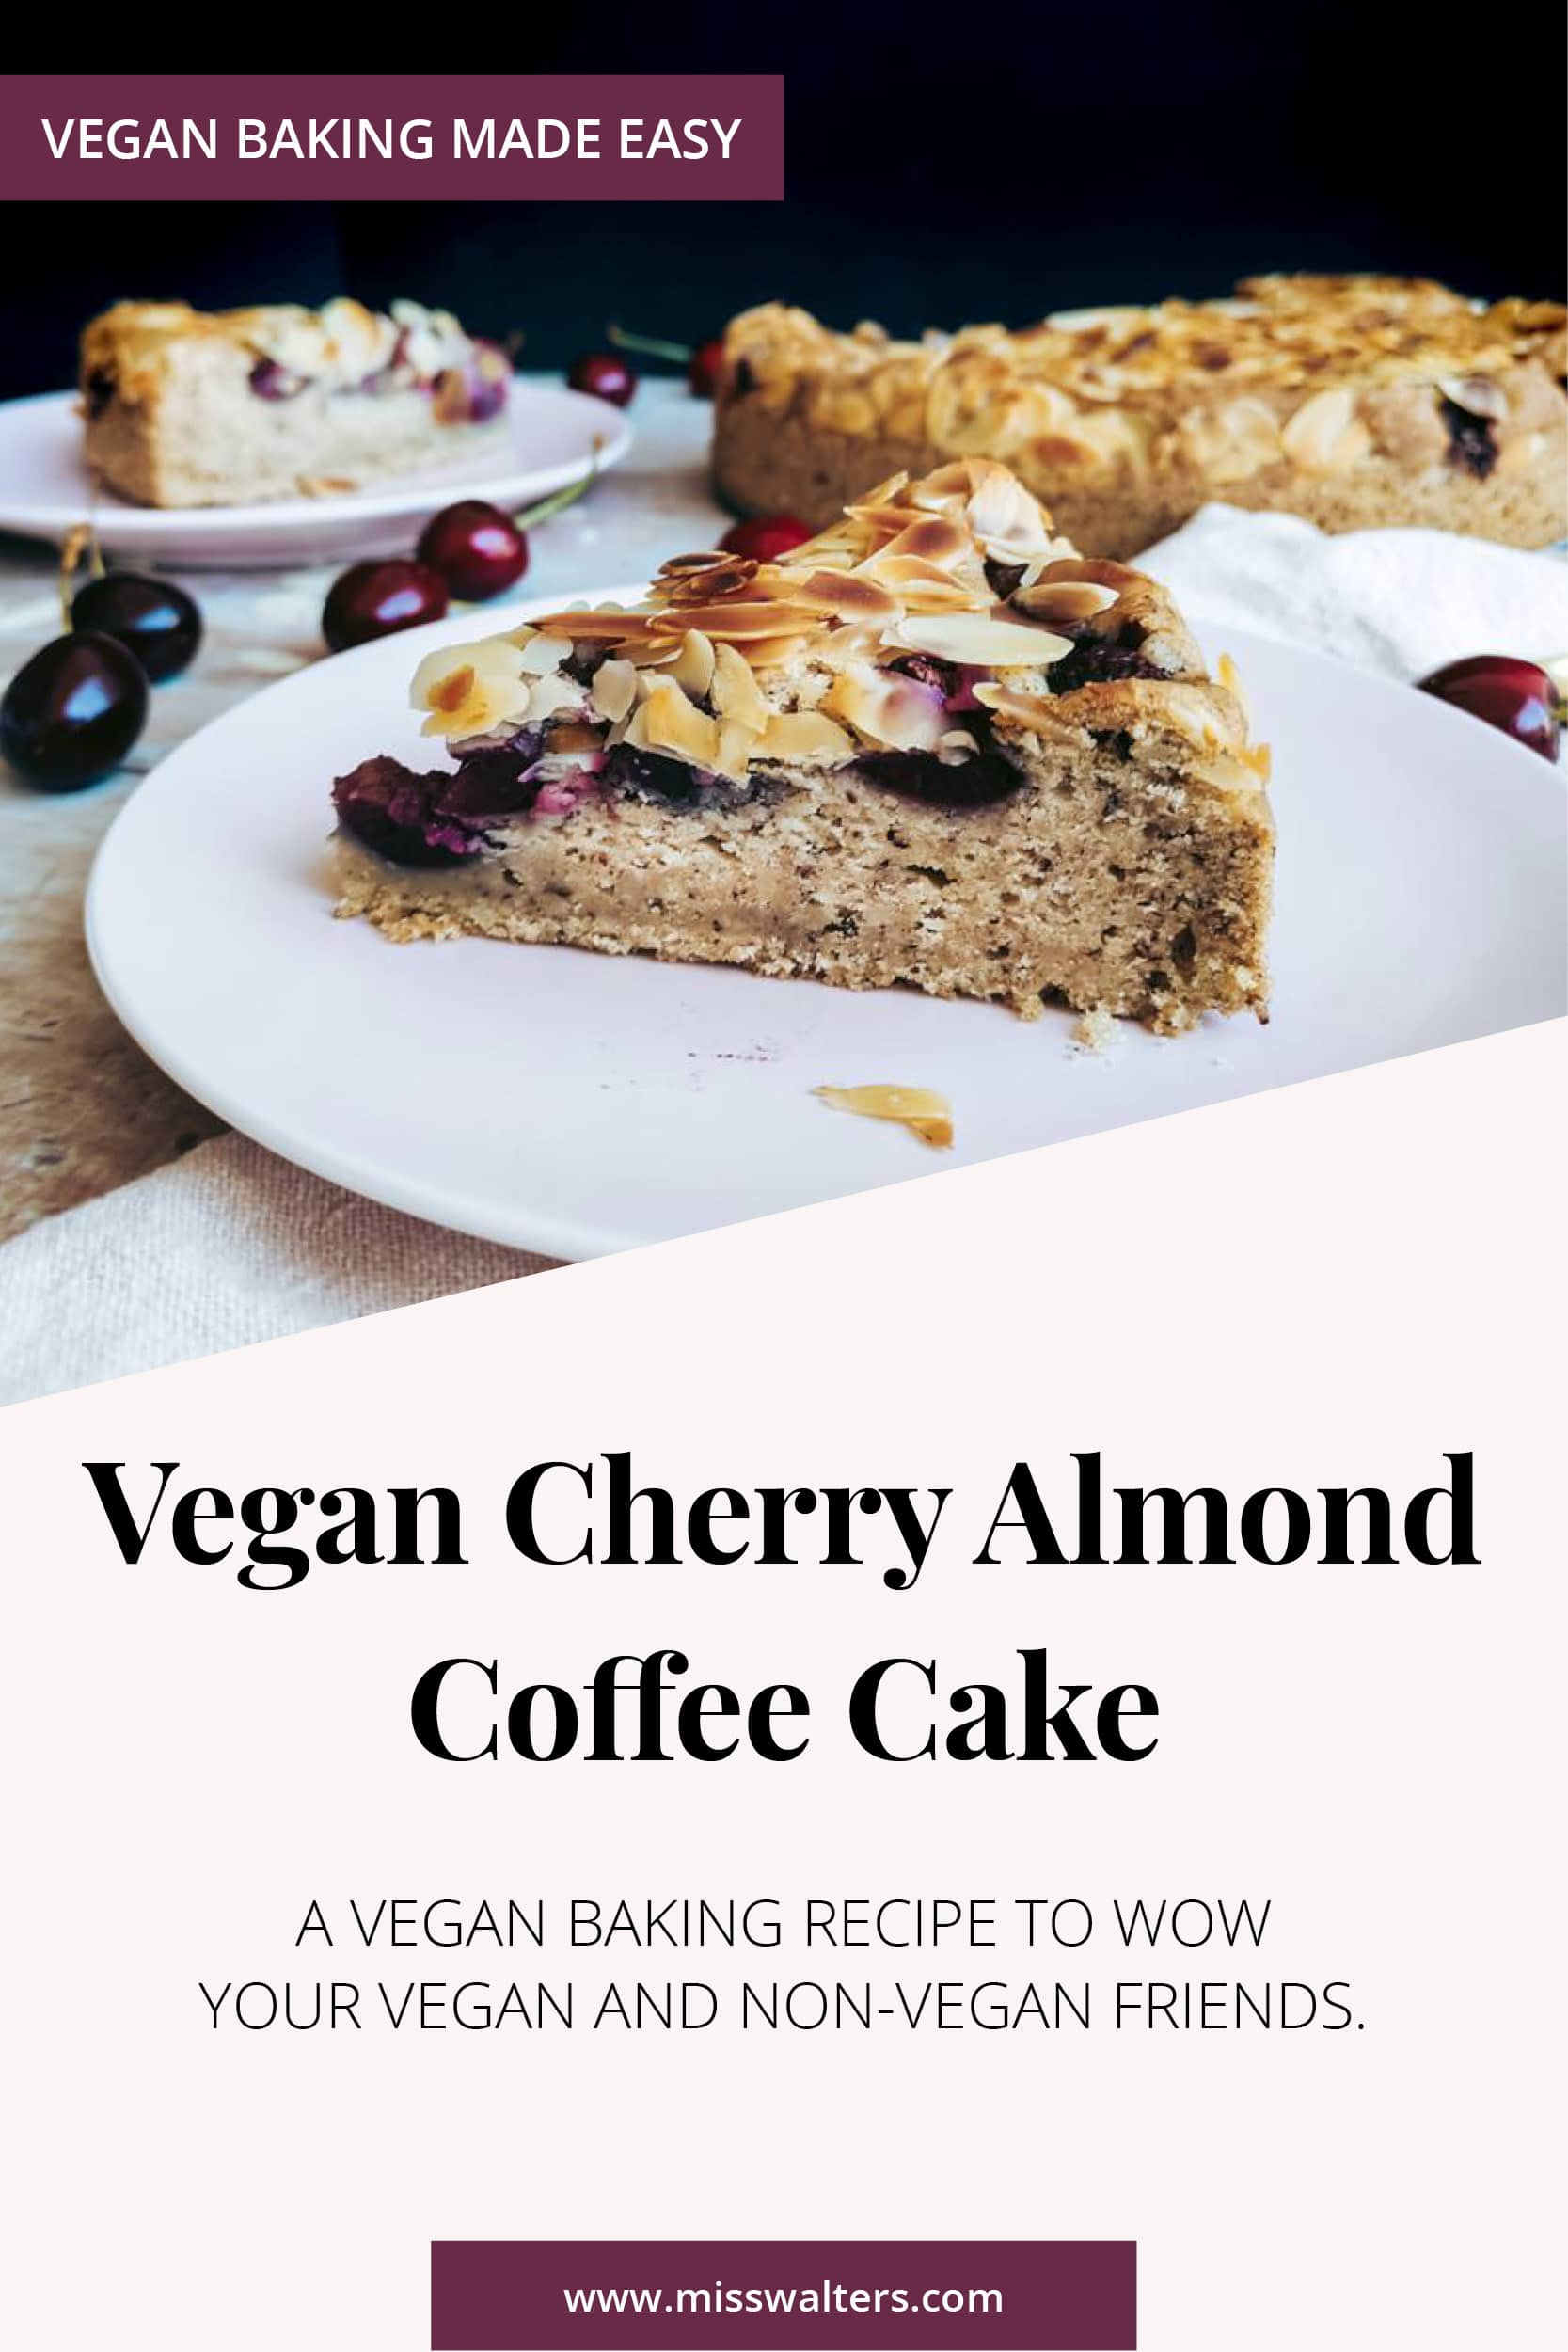 The perfectly moist and delicious vegan coffee cake, flavoured with ground almonds and topped with almond flakes and lots of big, juicy sweet cherries. This Cherry Almond Coffee Cake is vegan, made with spelt flour and sweetened with birch sugar.